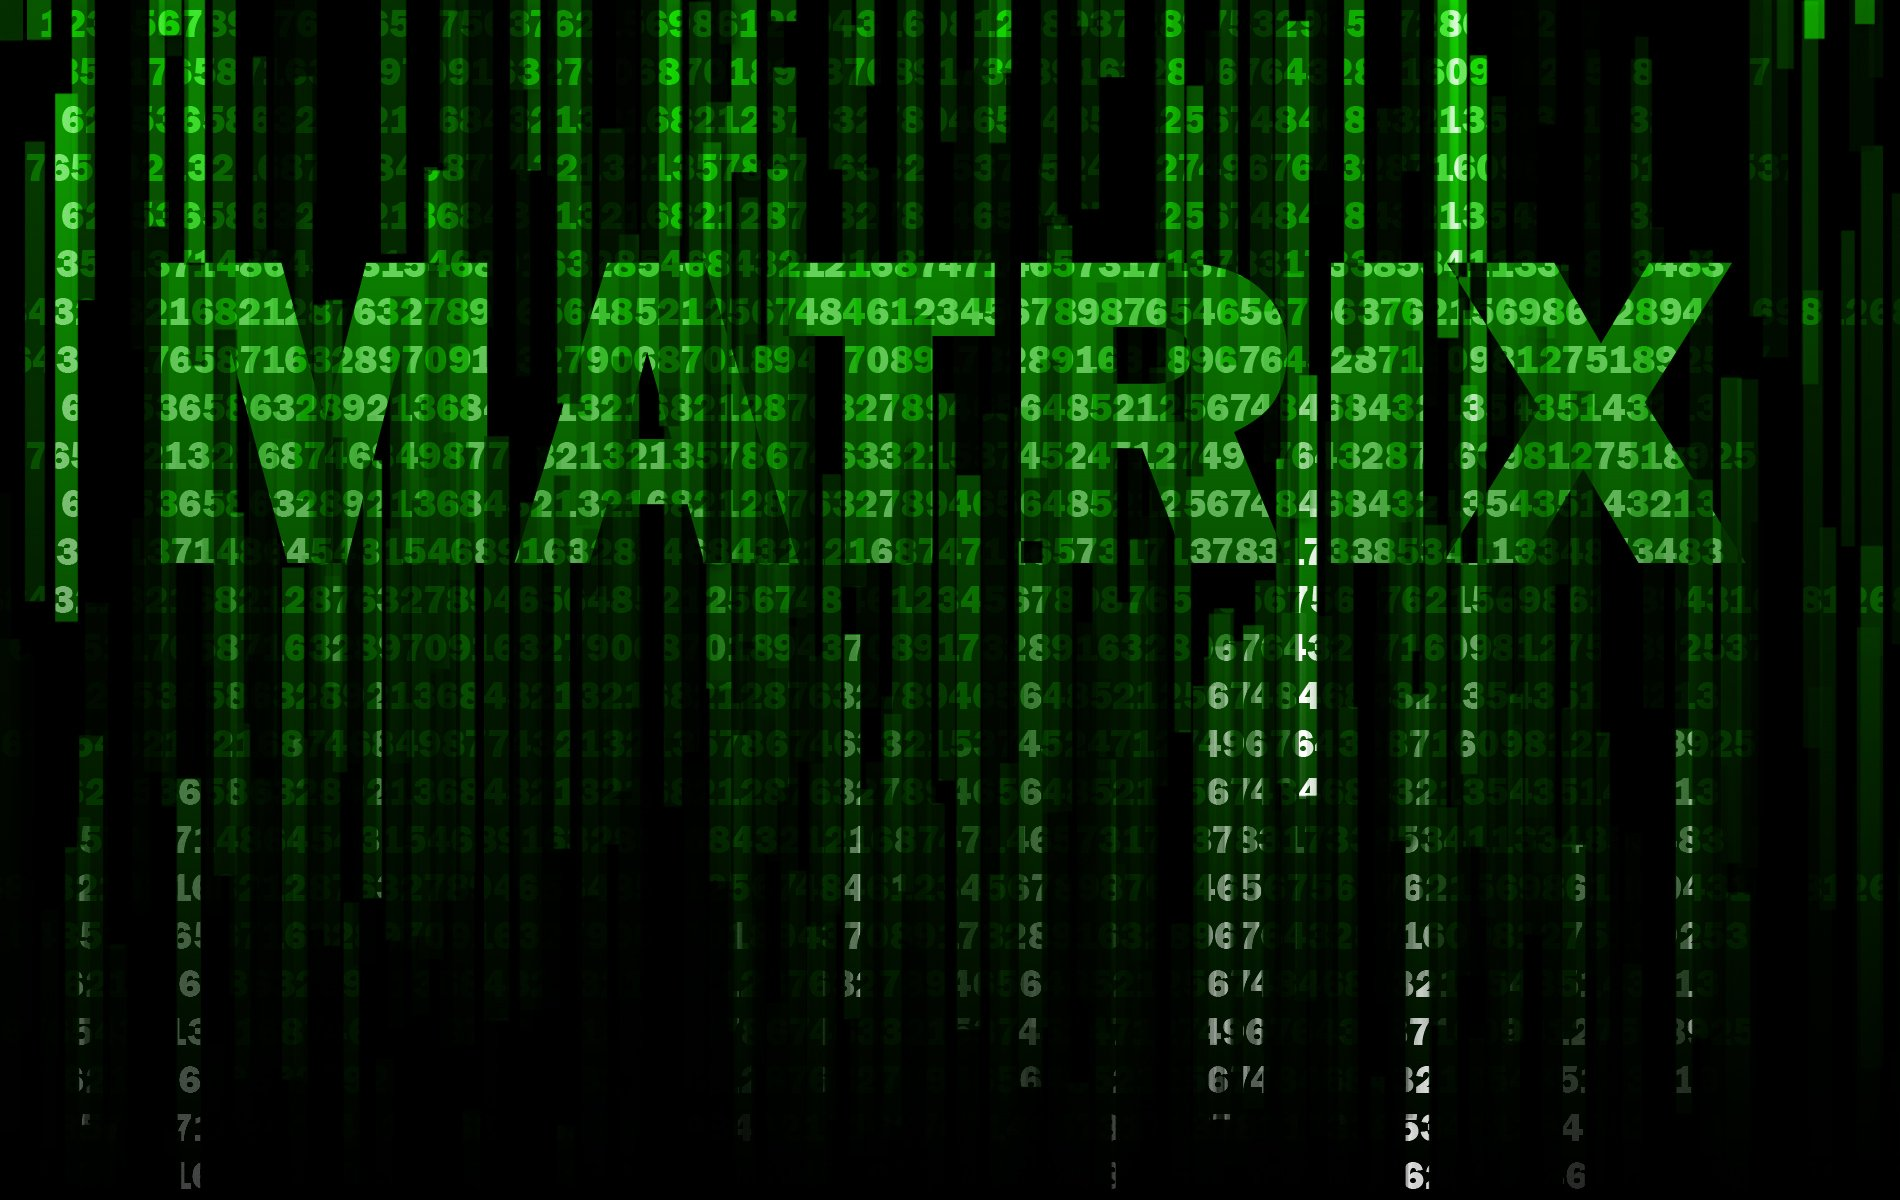 Moving Matrix Wallpaper Windows 10 - WallpaperSafari